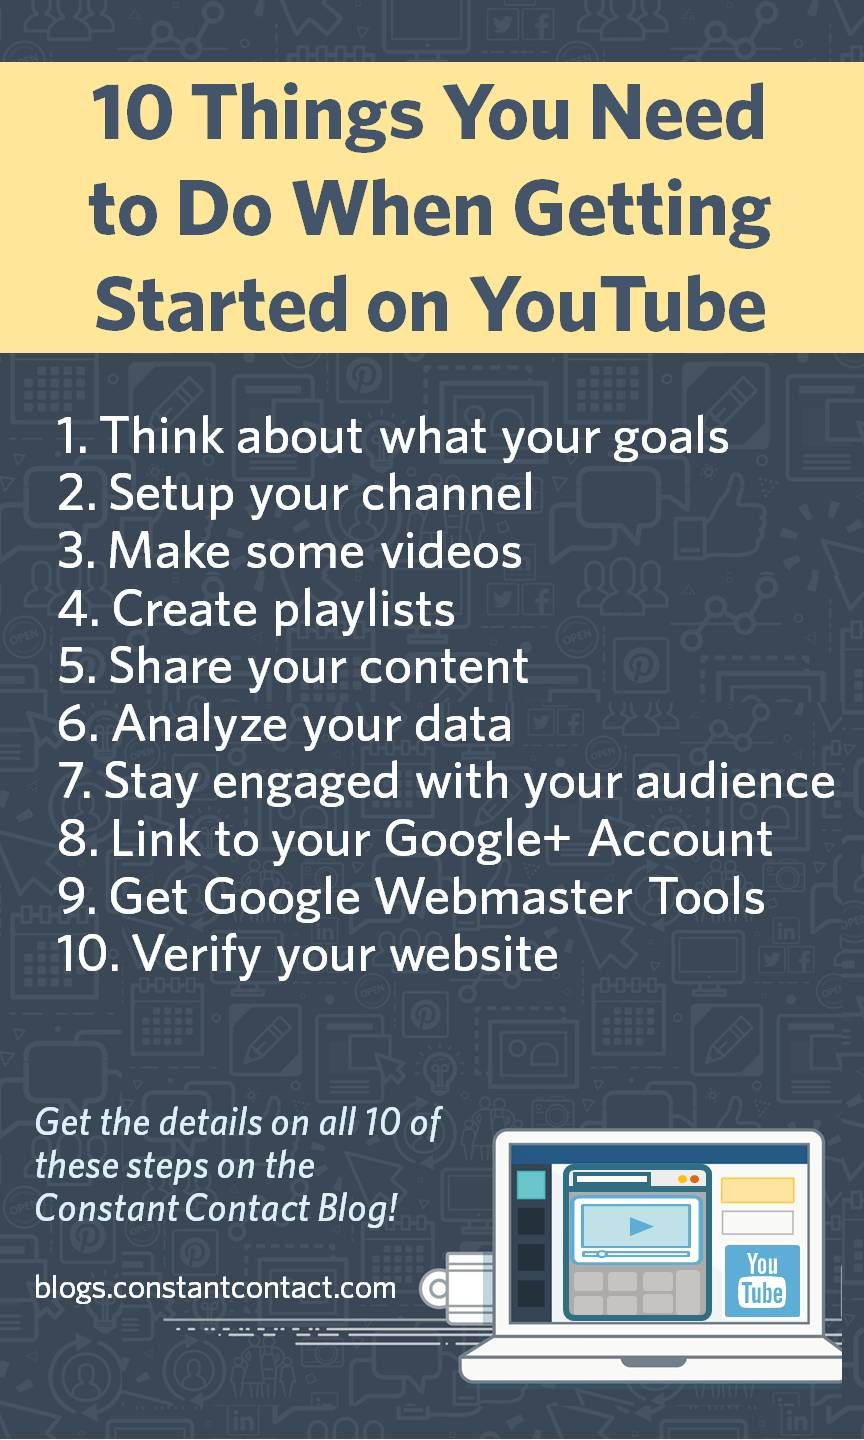 10 Things You Need to Do When Getting Started on YouTube ...